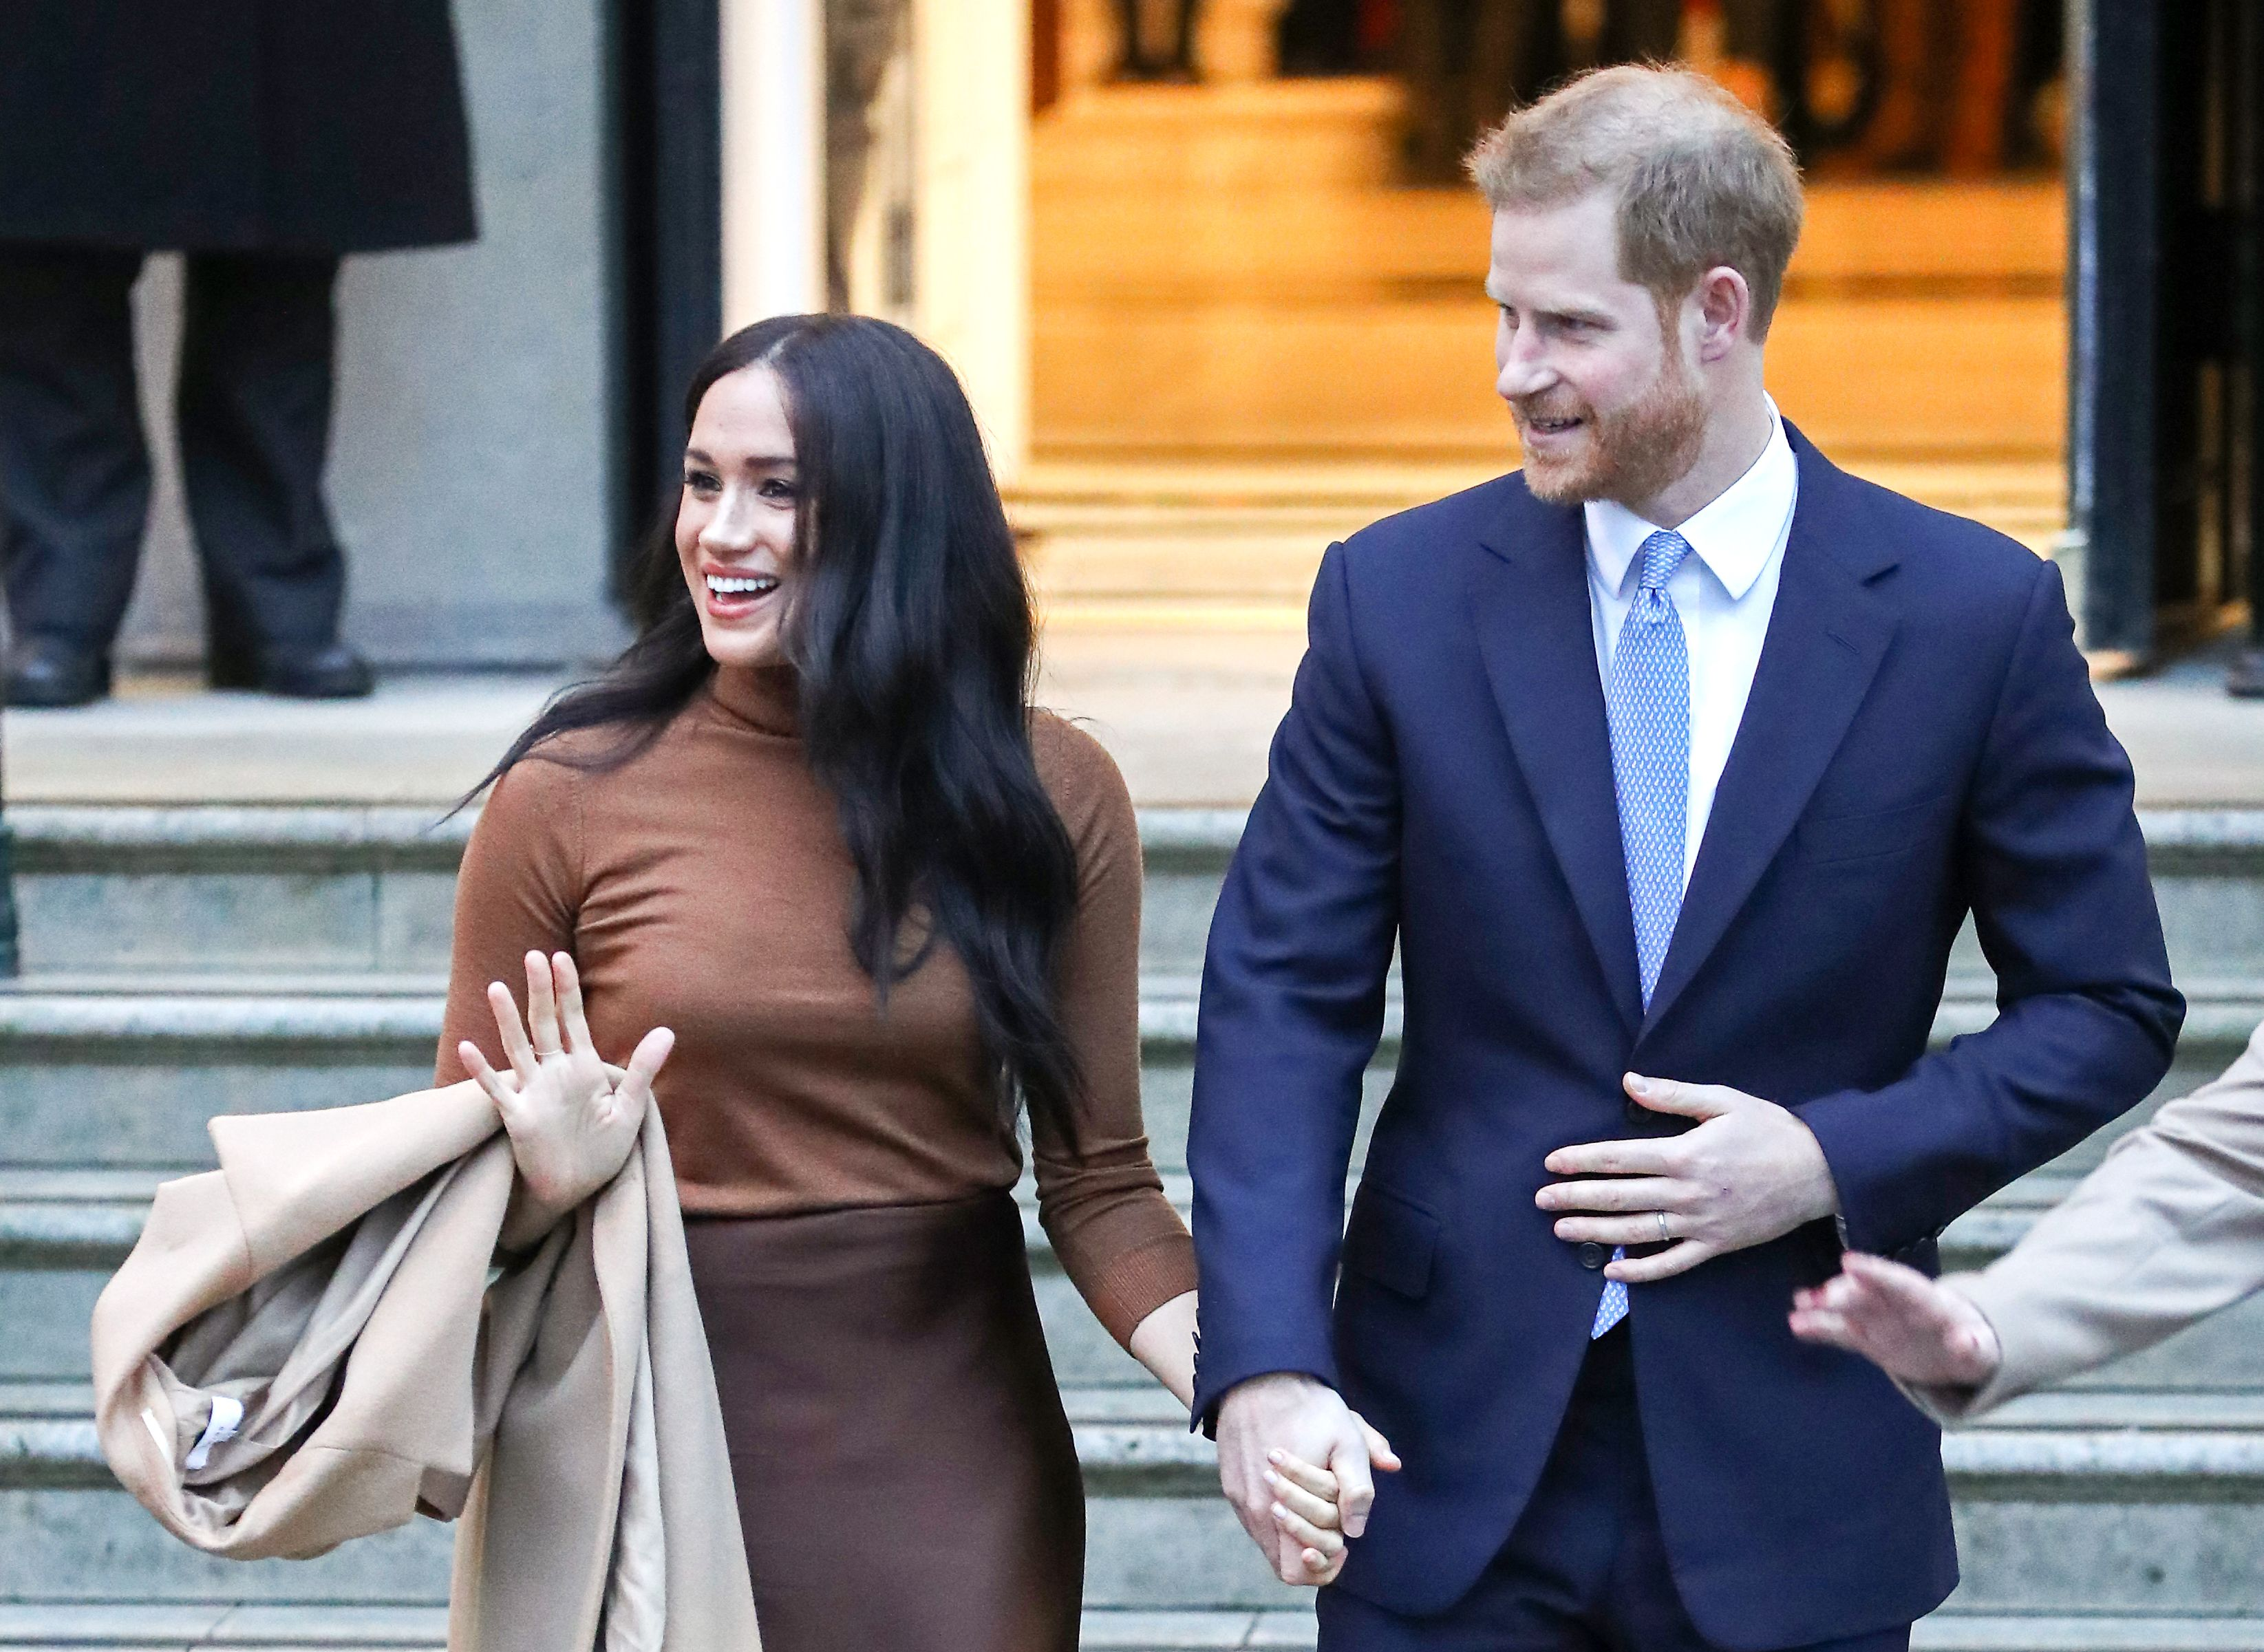 Duchess Meghan and Prince Harry depart Canada House on January 07, 2020, in London, England | Photo: Chris Jackson/Getty Images